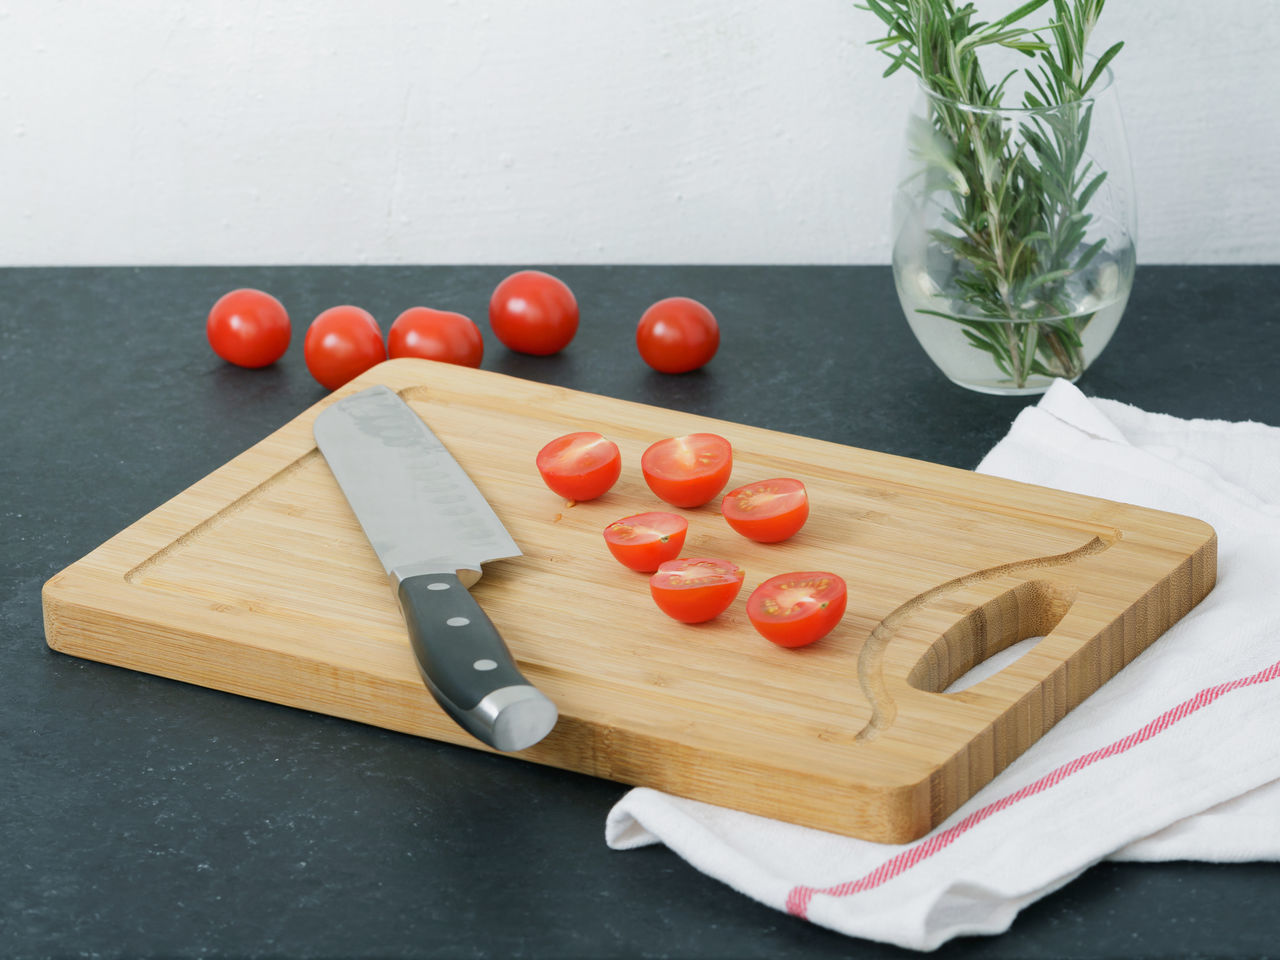 Chopping Board Close-up Cutting Board Day Food Food And Drink Freshness Healthy Eating High Angle View Indoors  Kitchen Knife No People Preparation  Table Tomato Vegetable Wood - Material